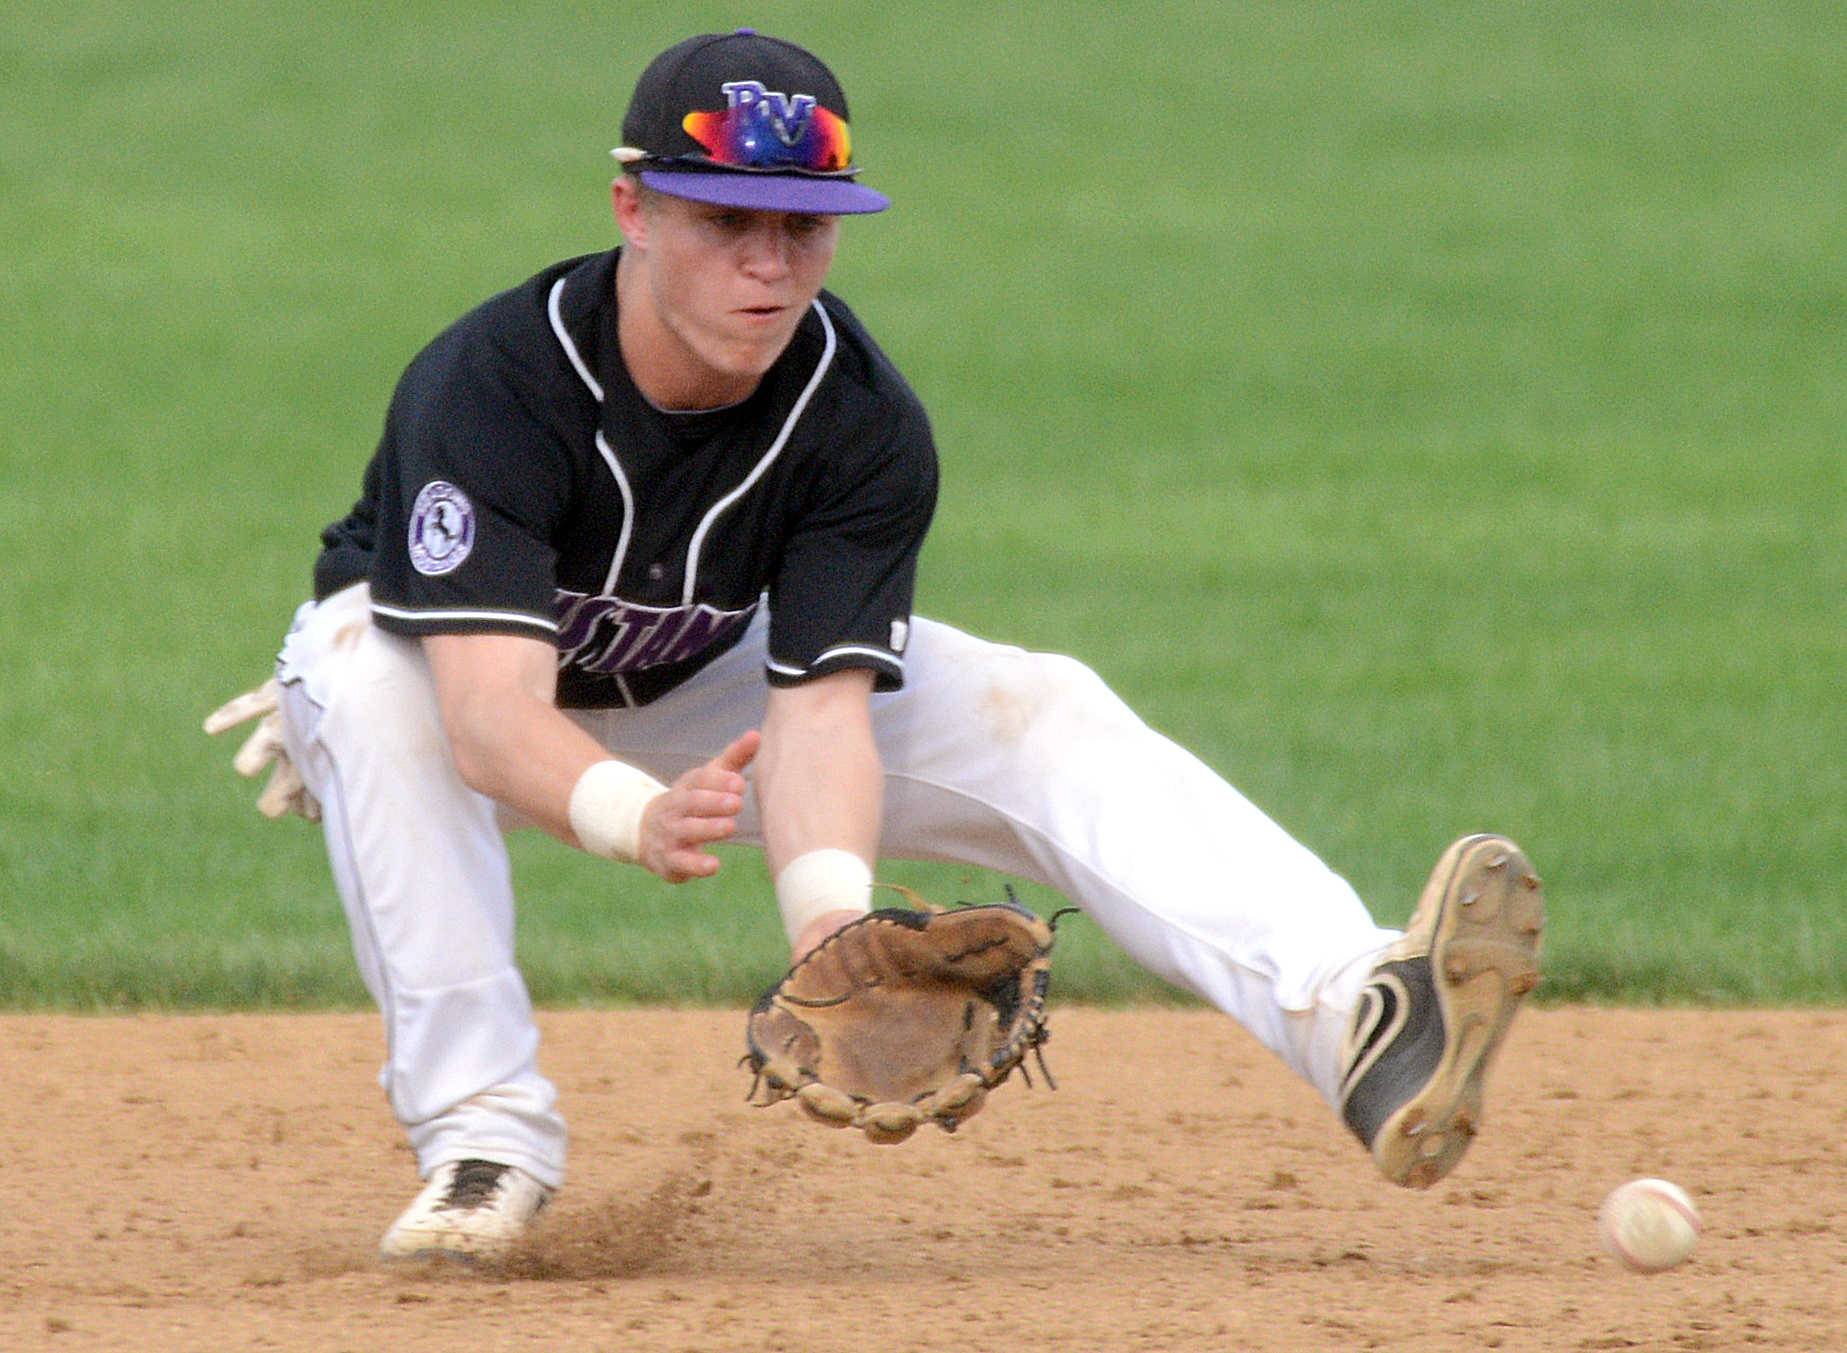 Rolling Meadows' Alex Niecikowski fields a grounder against Elk Grove on Monday.